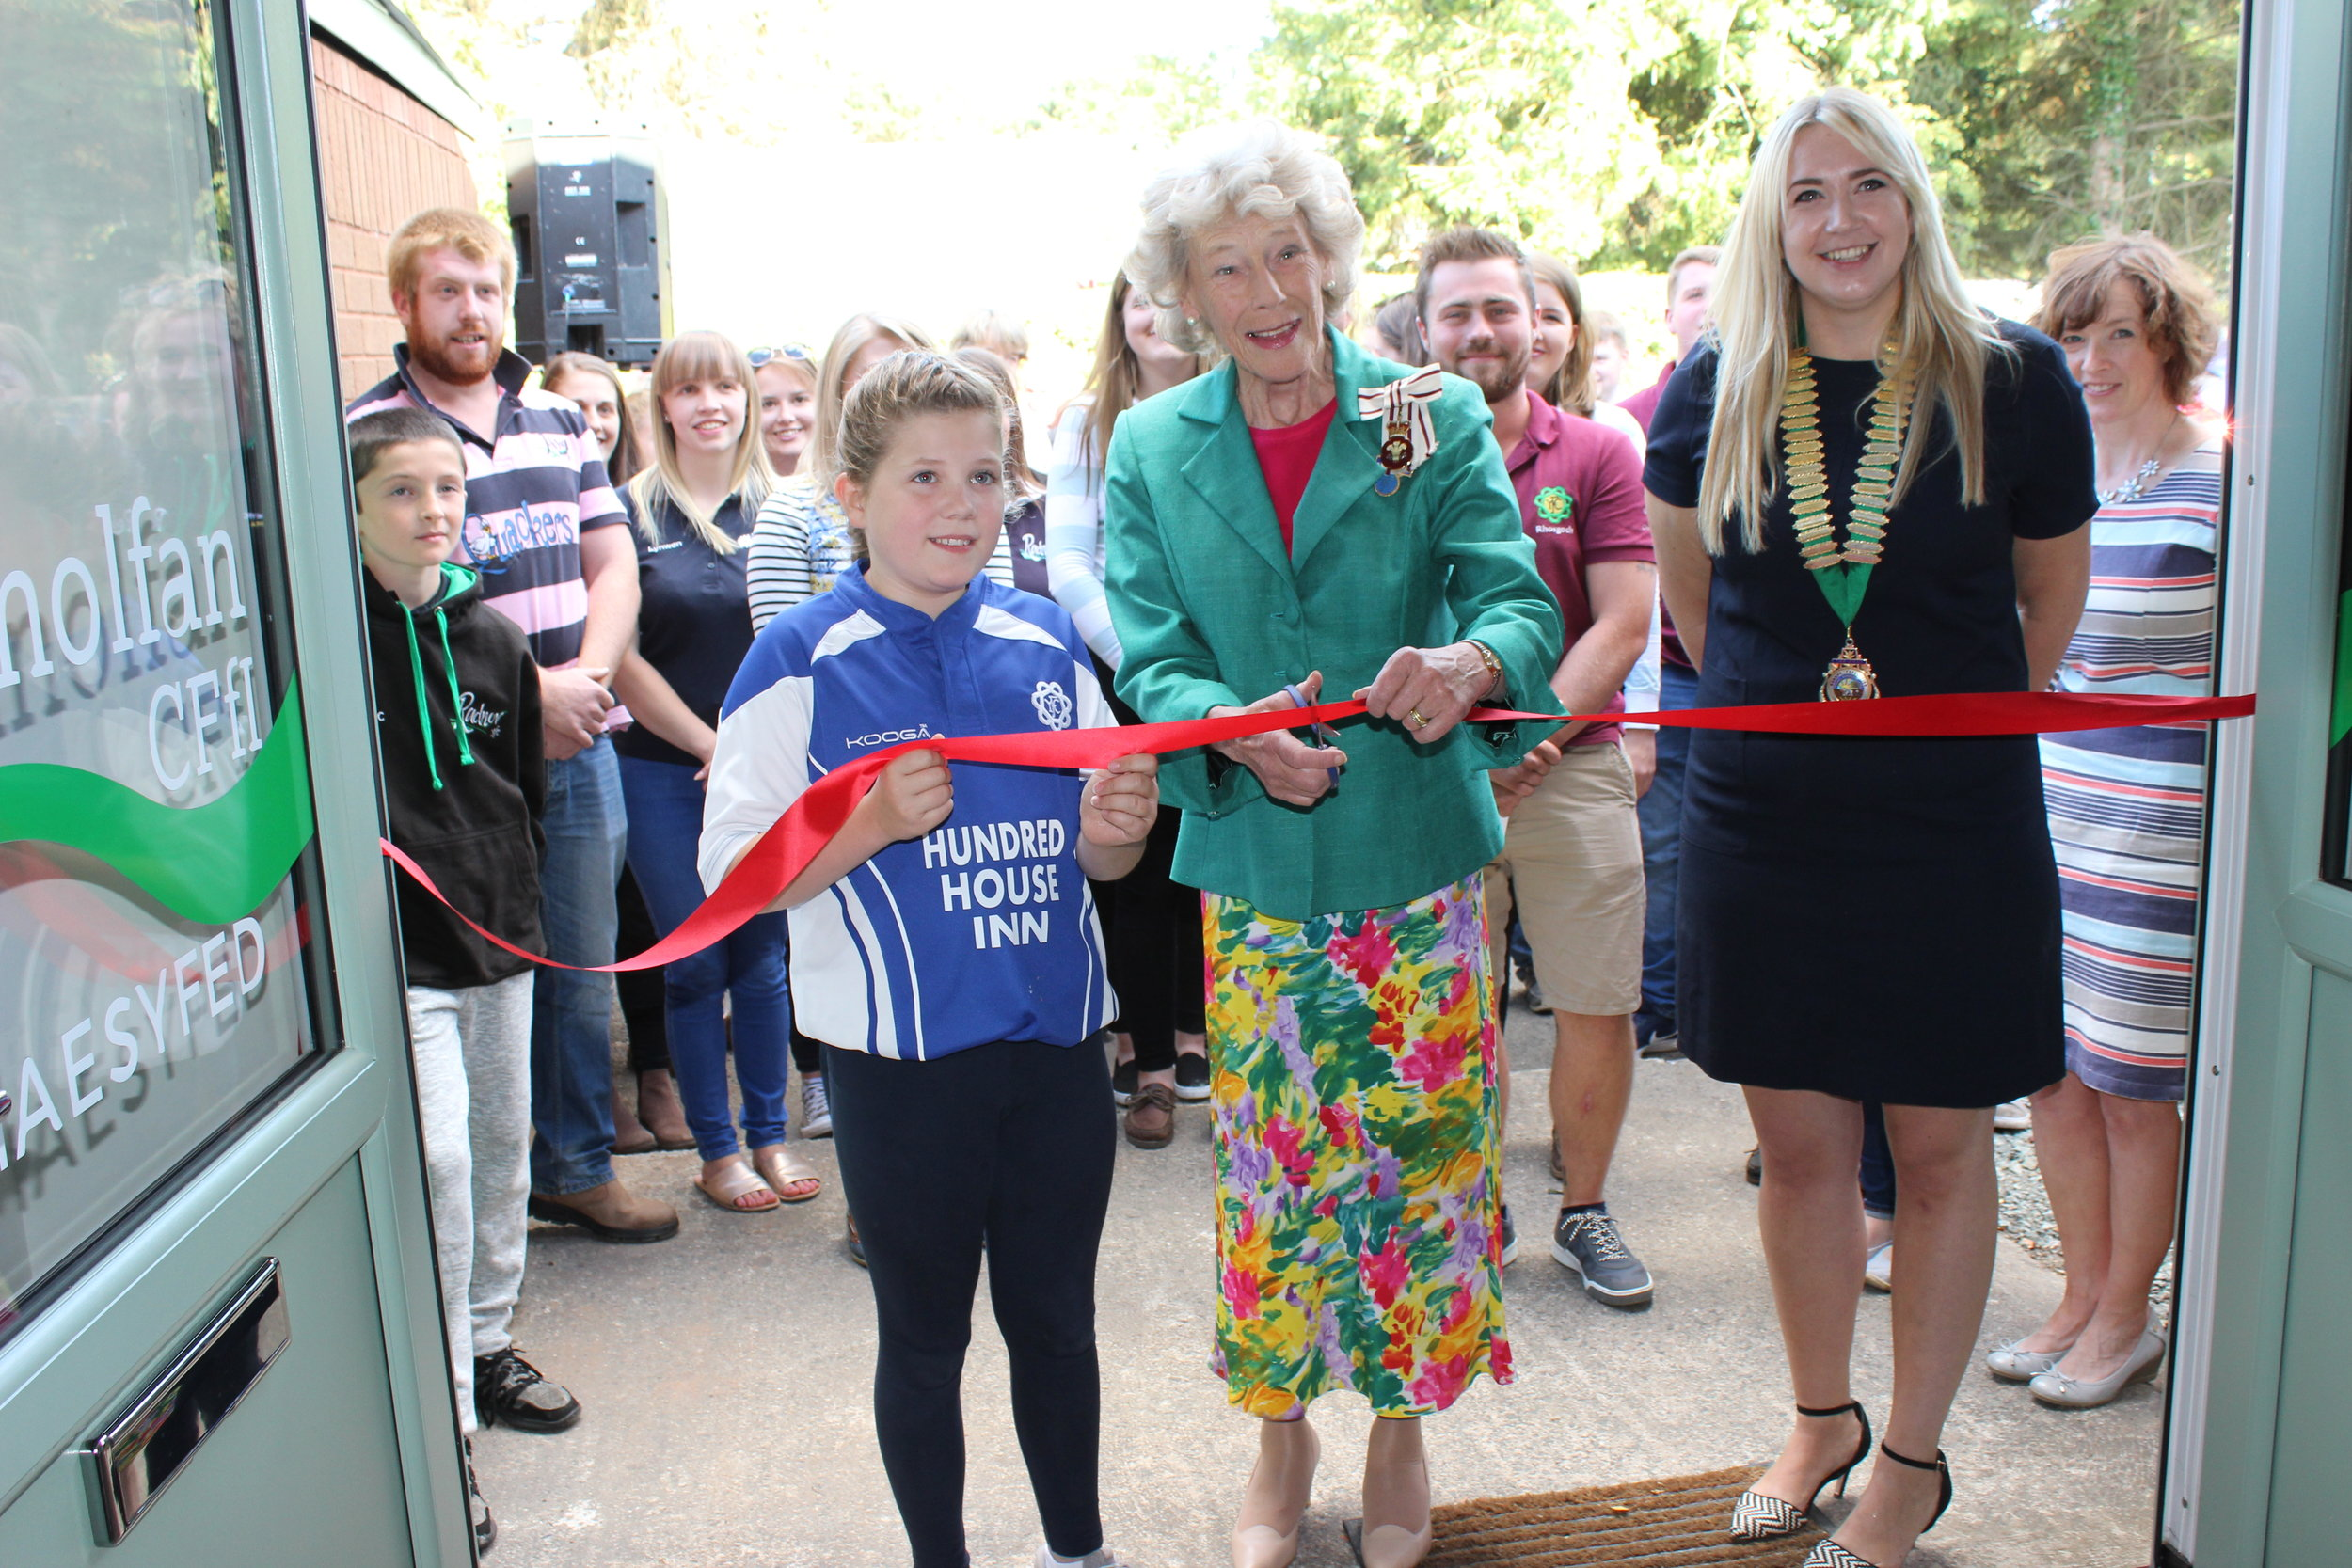 Youngest member of Radnor YFC Seren Price, Edw Valley YFC assisting Honourable Mrs Legge Bourke to officially open the Radnor YFC Centre with County Chairman Gemma Bufton.